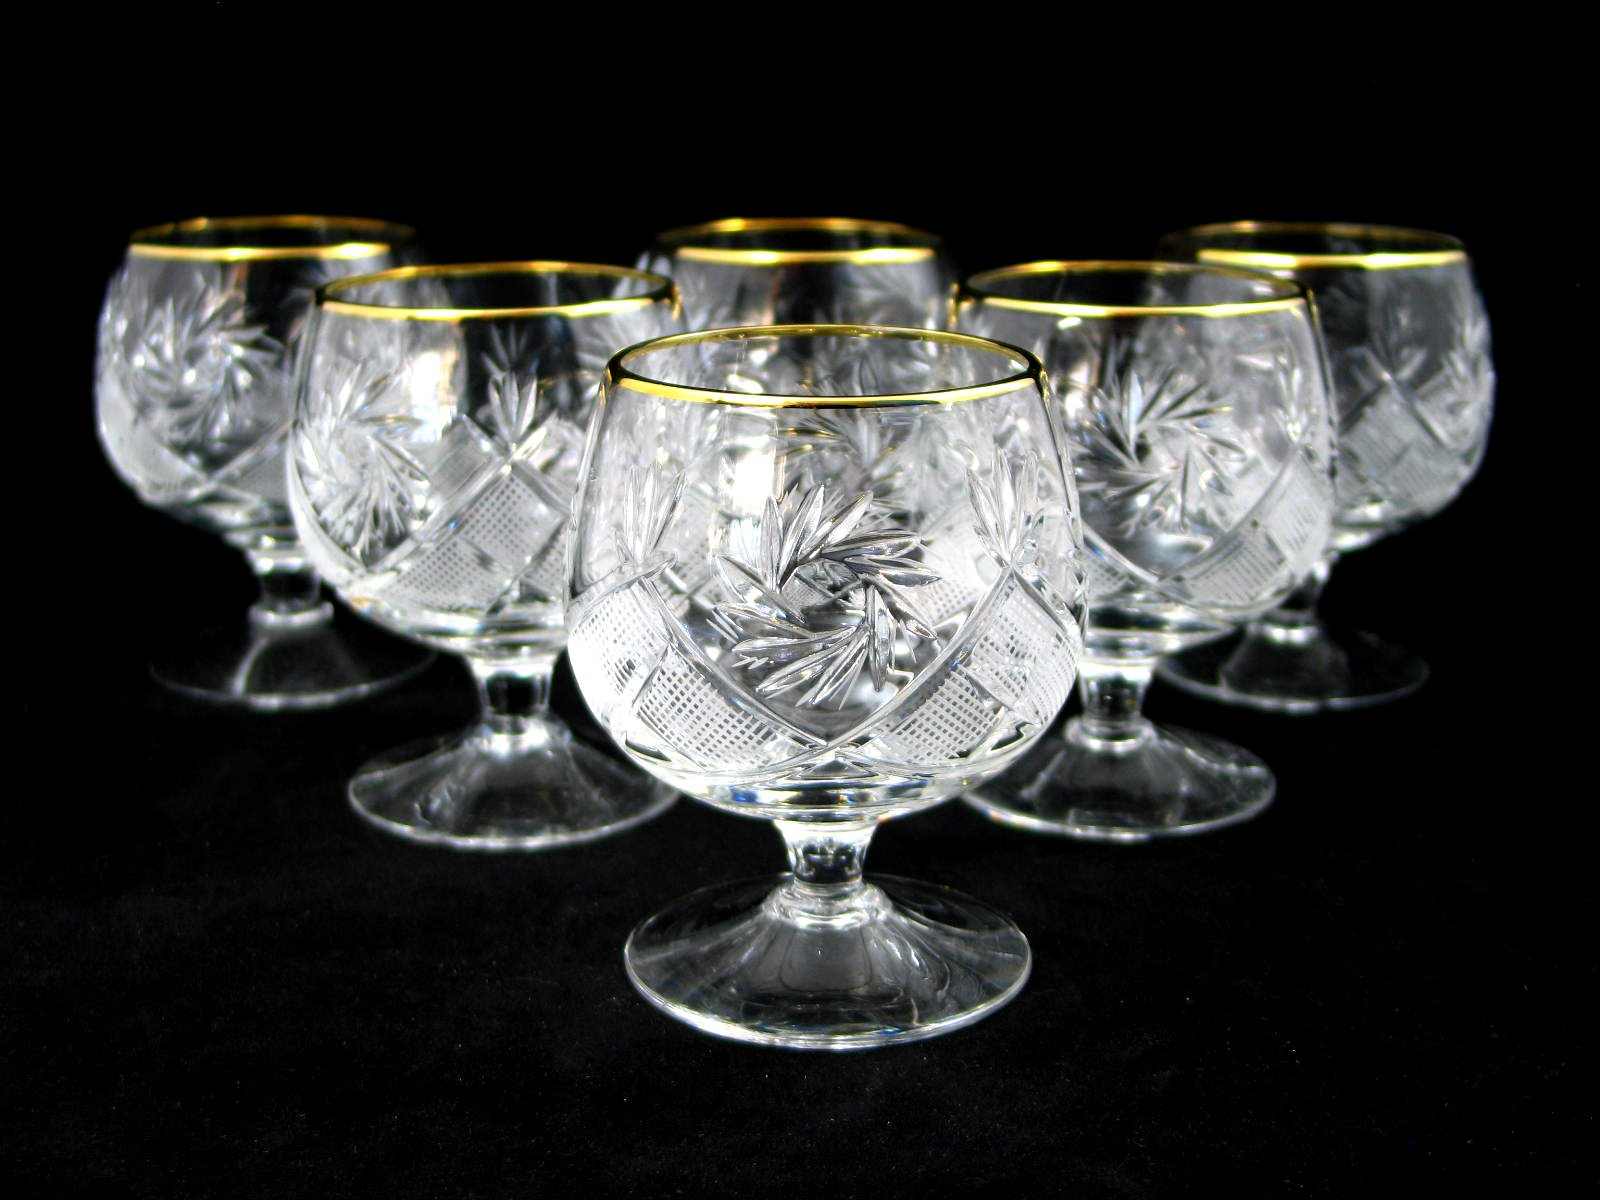 SET of 6 Russian Cut Crystal Cognac Scotch Whiskey Stemmed Snifter Goblet Glass 24K Gold Rimmed 10 Oz. Vodka Liquor Old-fashioned Glassware Hand Made by Neman Crystal (Image #2)